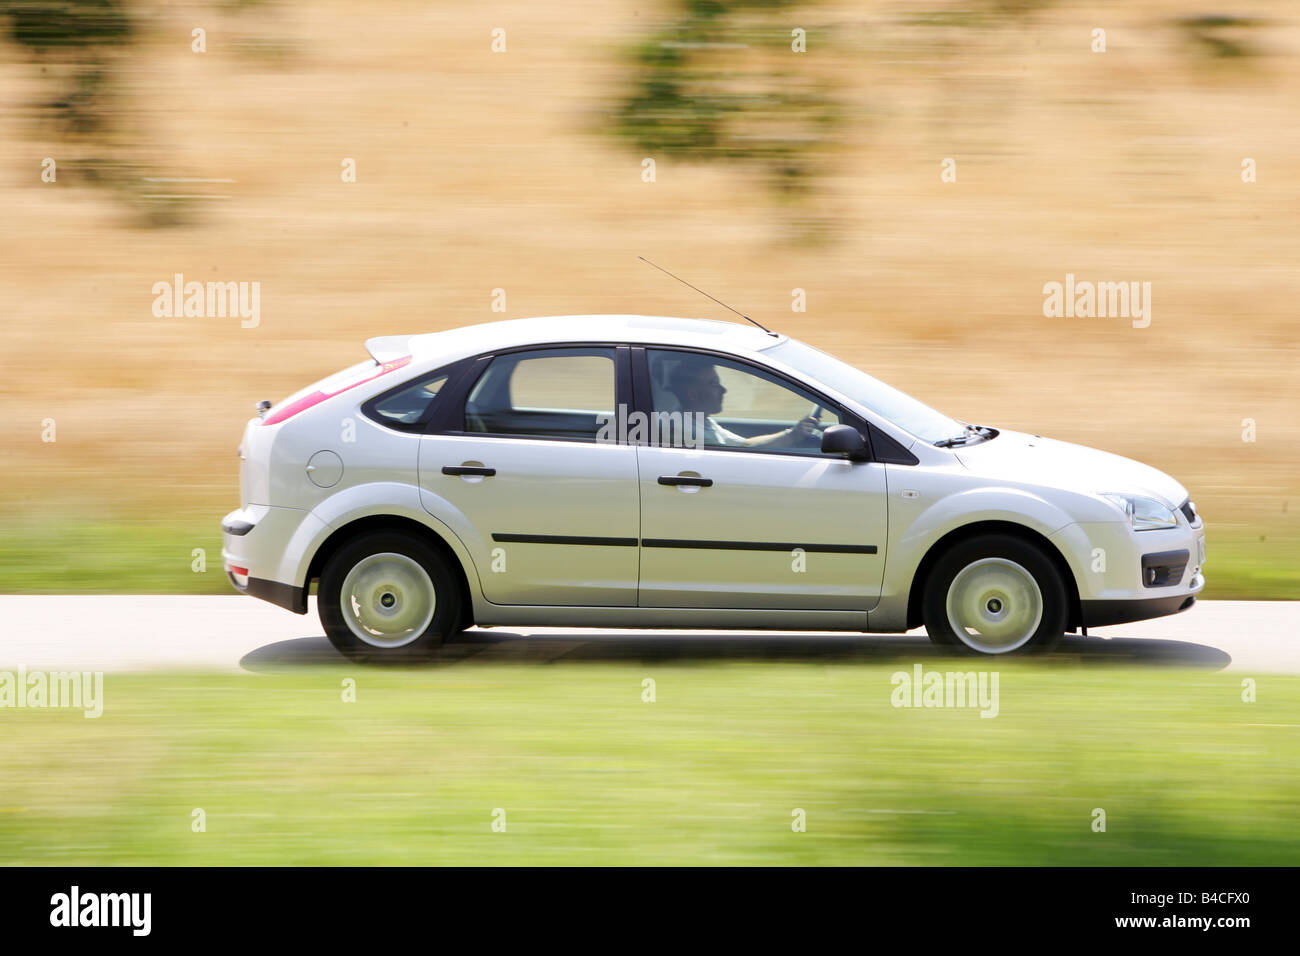 Car ford focus 1 6 tdci model year 2005 silver limousine